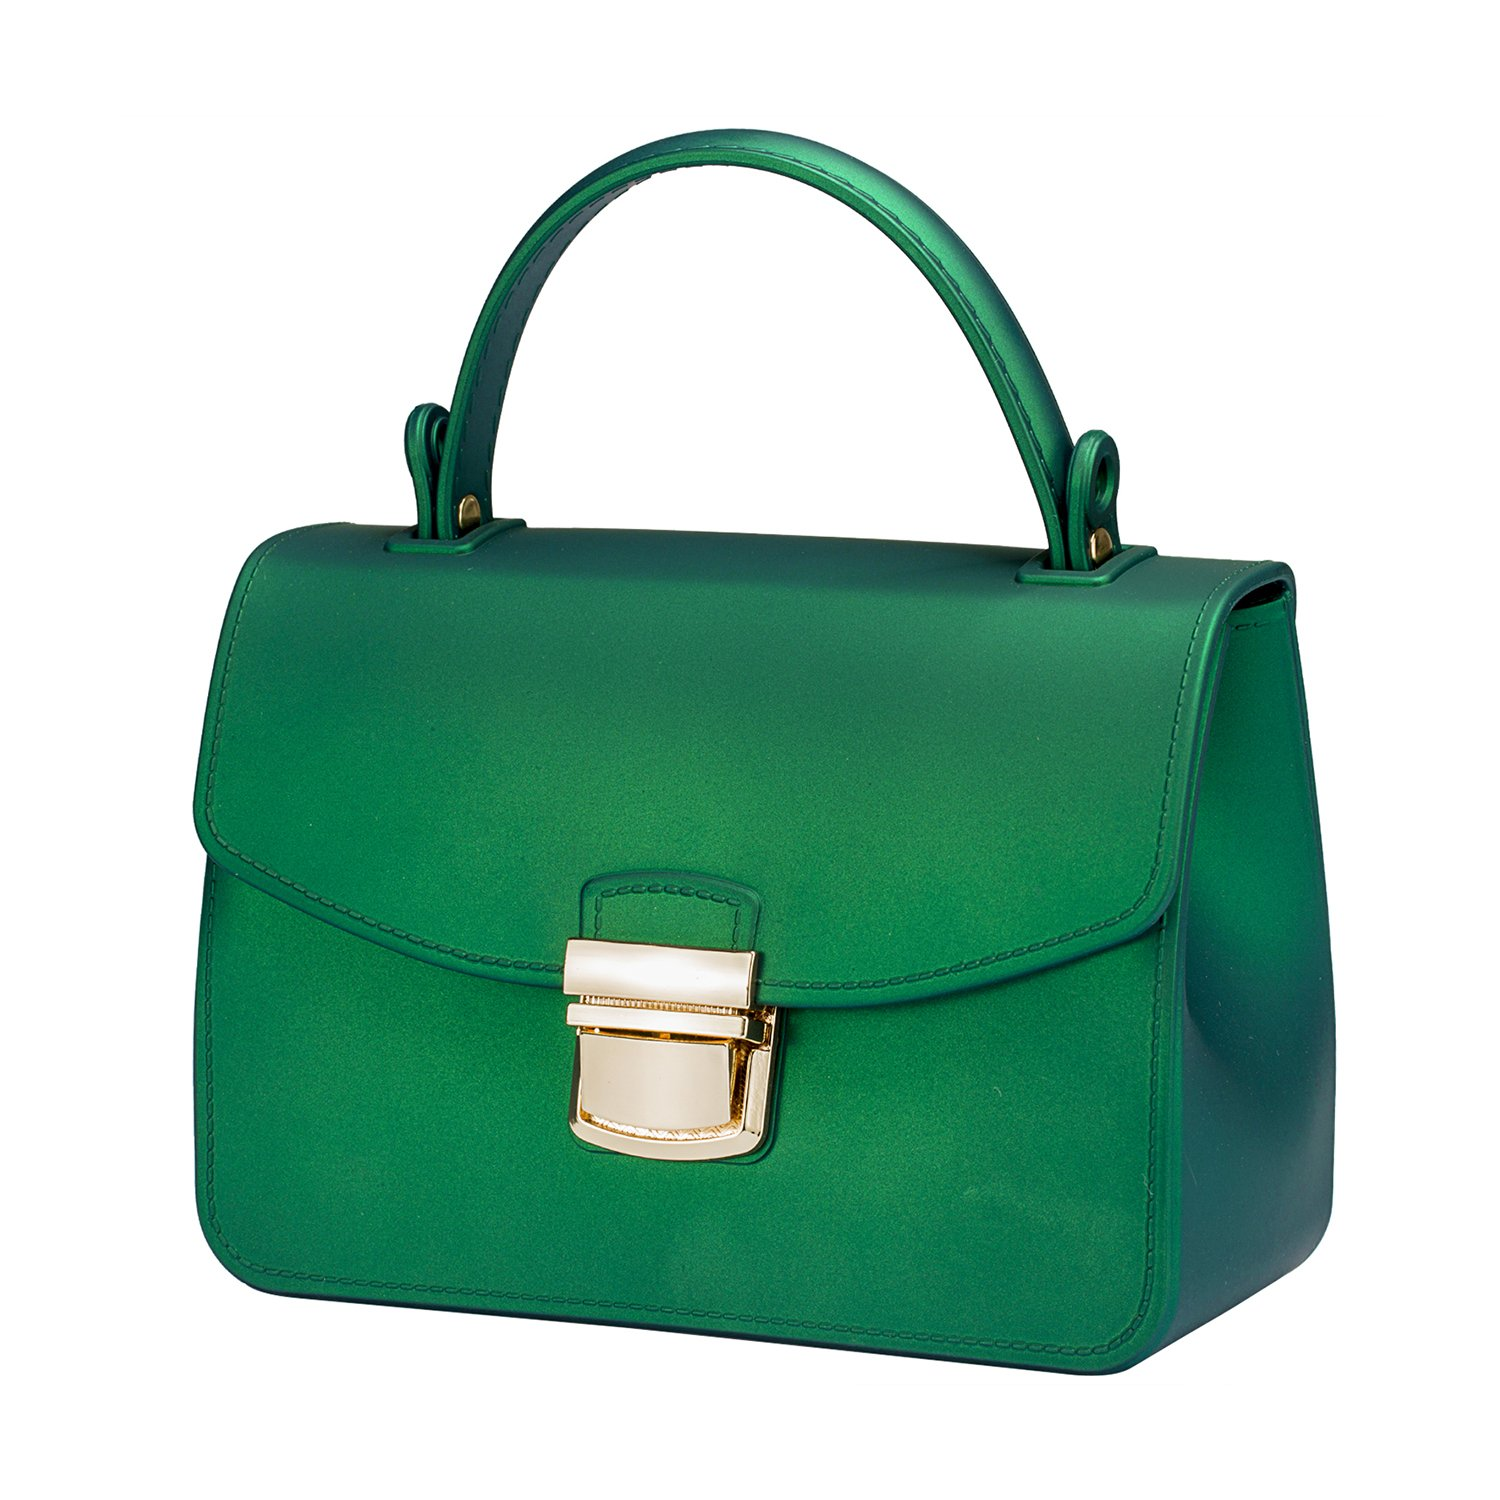 Small Top Handle Handbags Jelly Satchel Bags for Women Tote Purse - Green by Chrysansmile (Image #2)